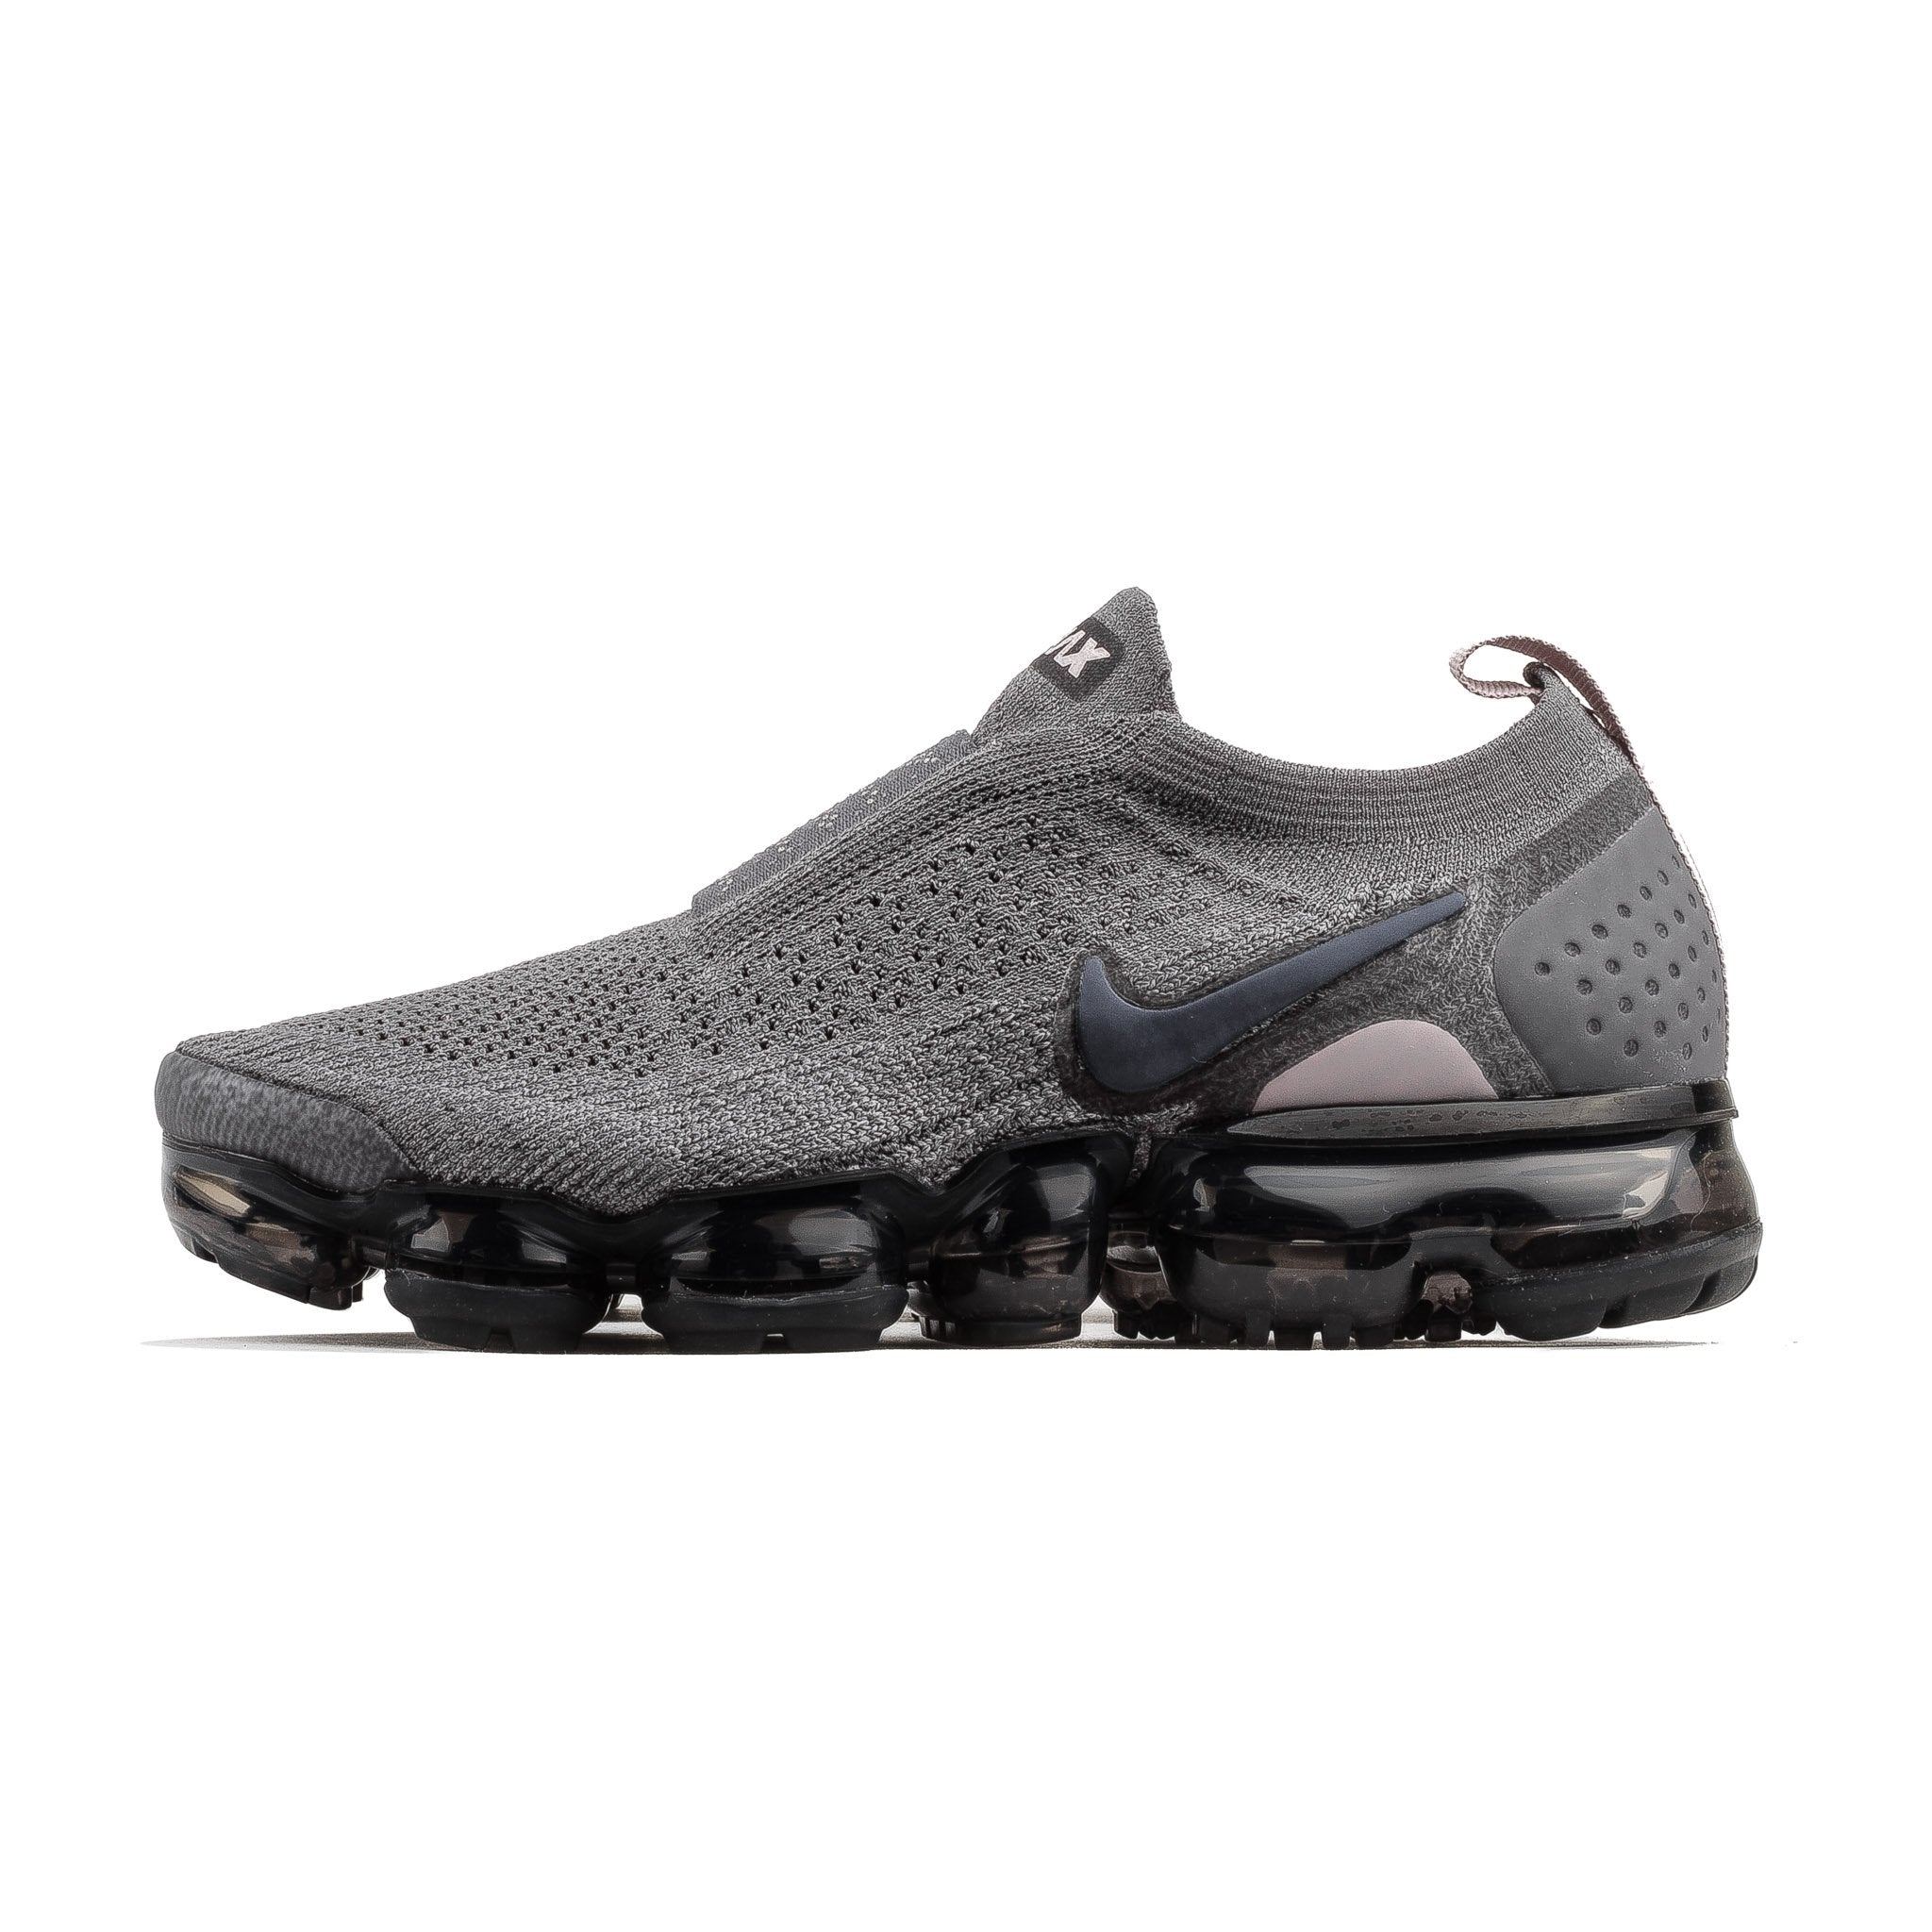 info for 2d453 8c6a7 W Air Vapormax FK Moc 2 AJ6599-003 Gunsmoke